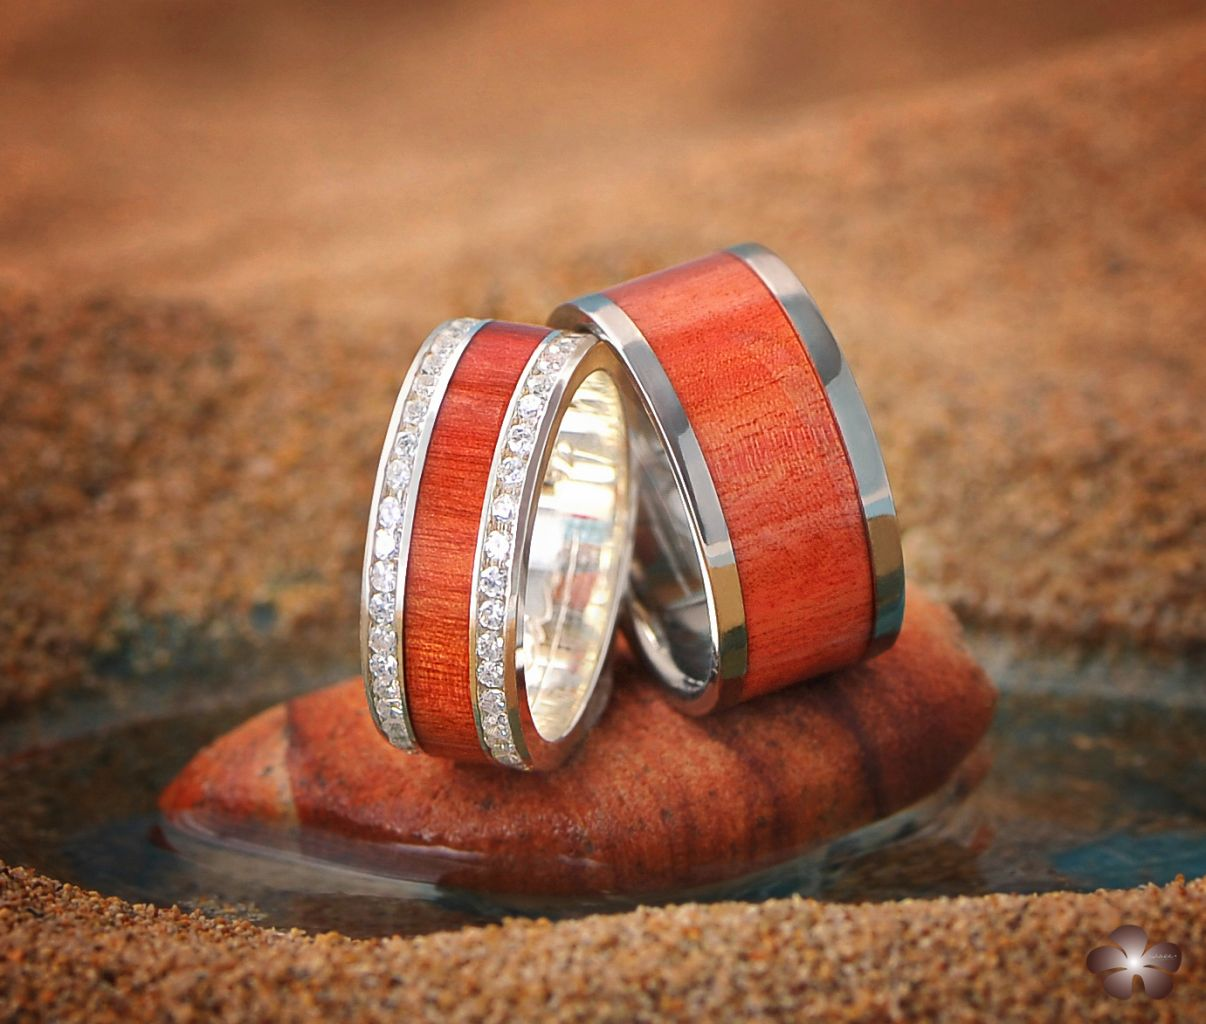 Alamea Hawaii koa wood rings